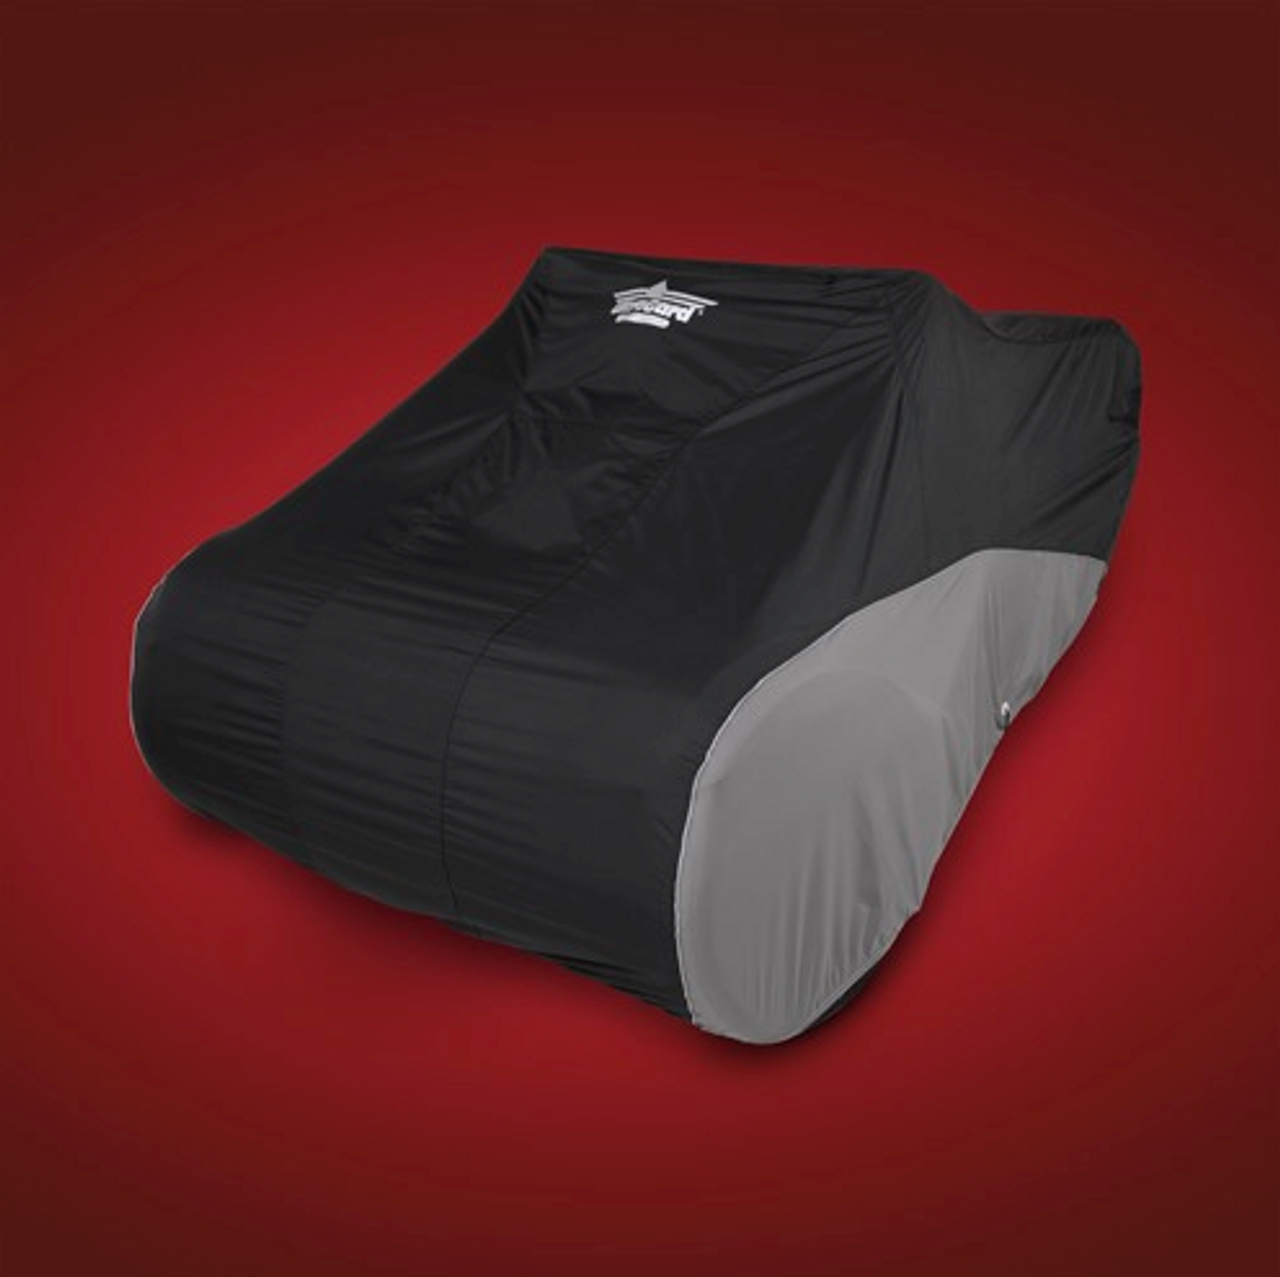 UltraGard® Classic Cover for Can-Am Ryker (SC-4-474BC) Black Over Charcoal Cover On Can-Am Ryker